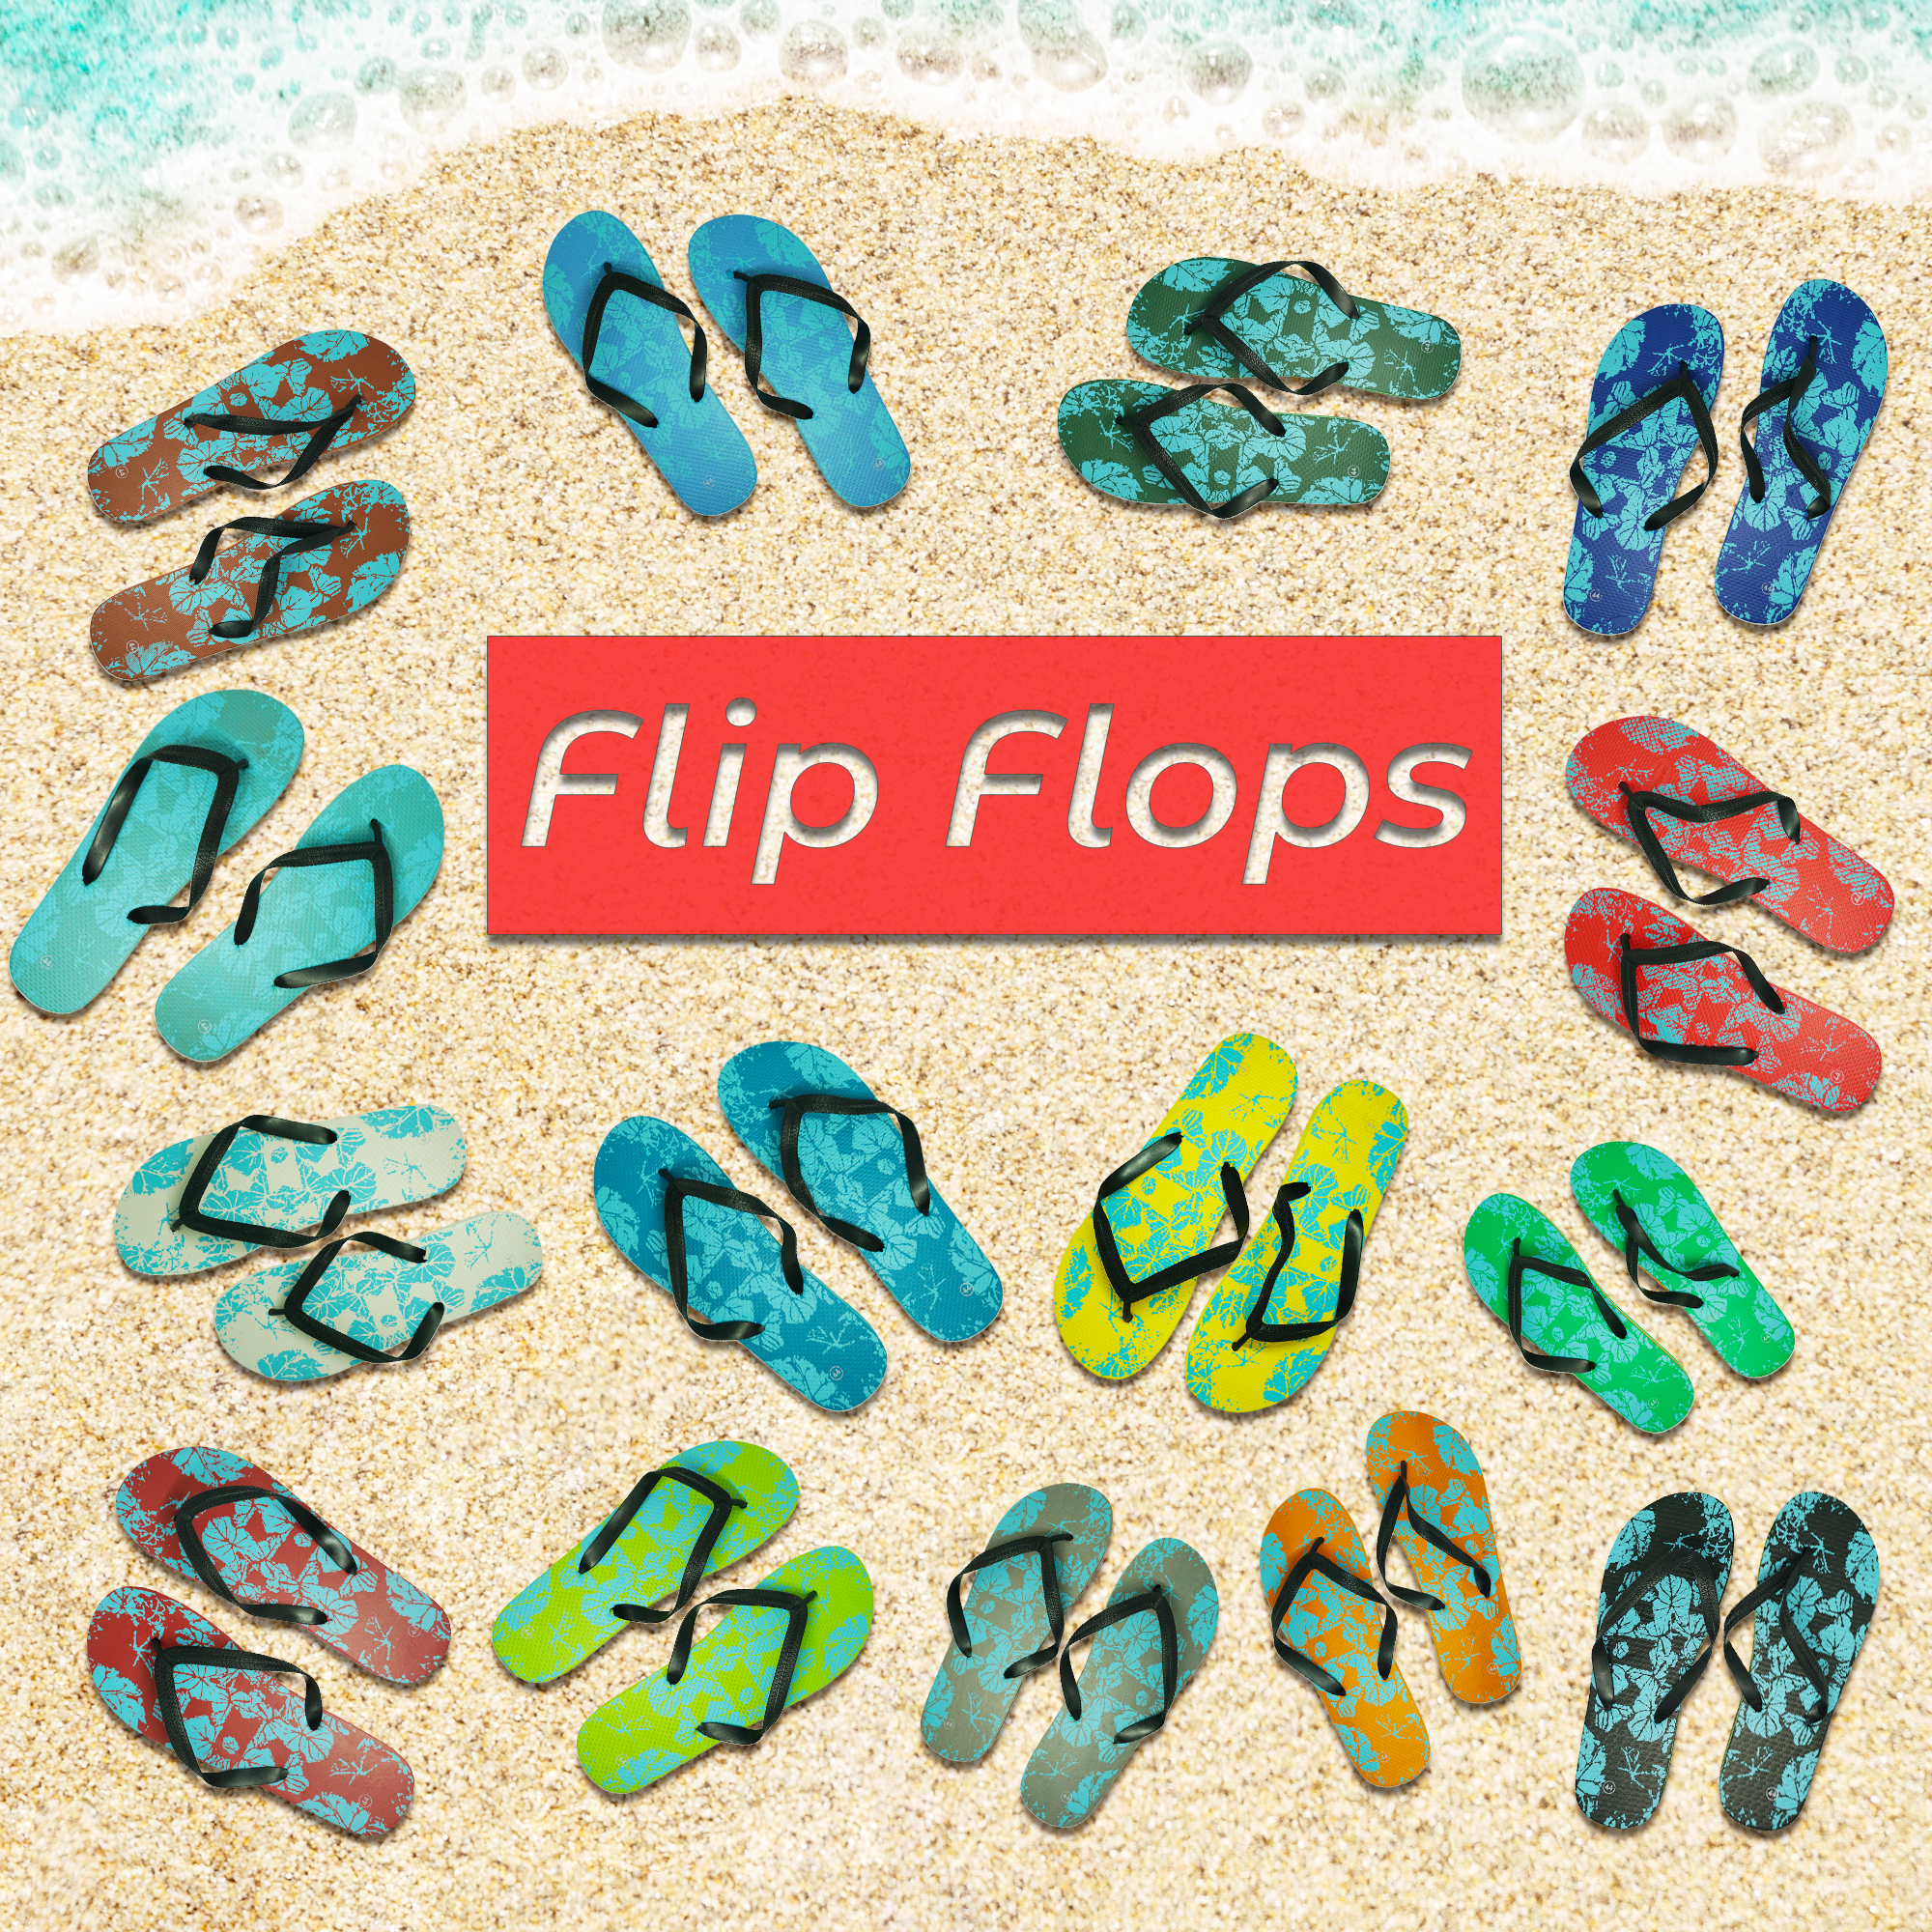 Fashion Home Pinch Non-slip Beach Flops Home Slippers 36/24.5cm_Mixed color